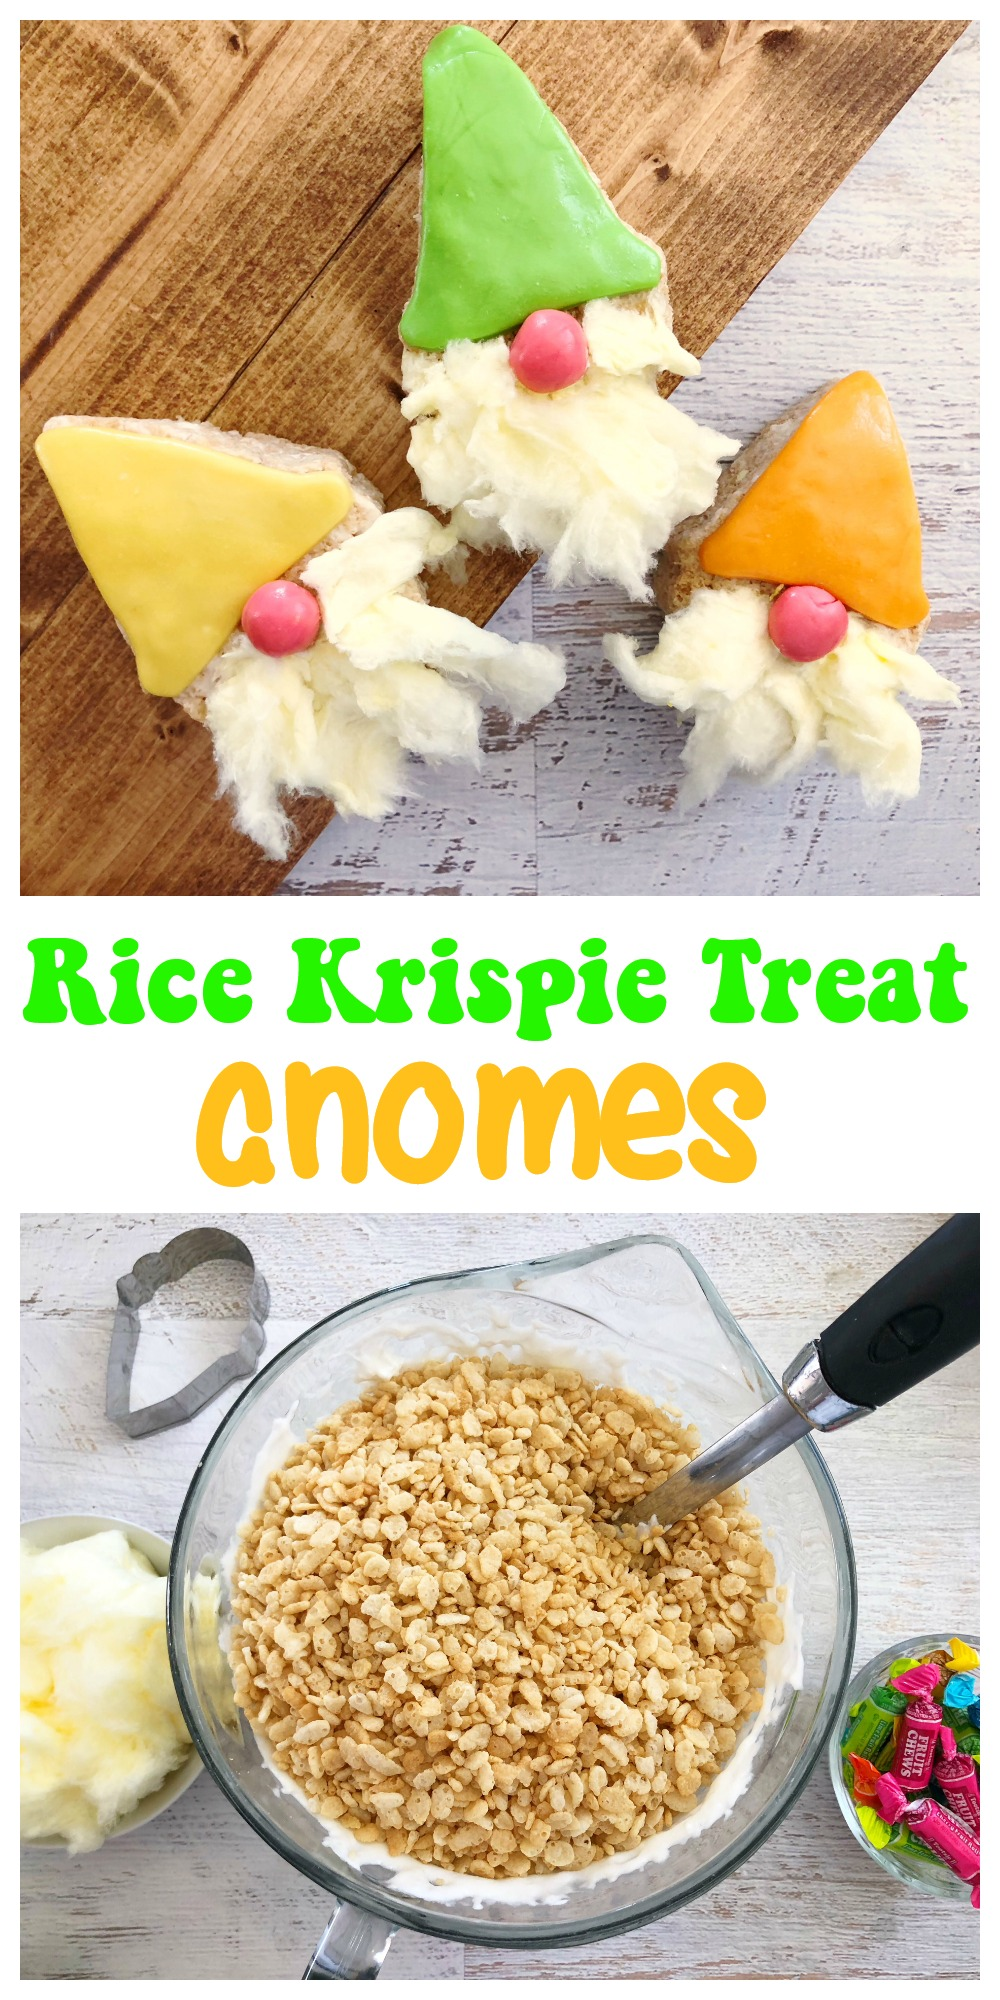 Have fun celebrating the new Sherlock Gnomes movie with these Rice Krispie Treat Gnomes! It's a really easy recipe to make and they are even more fun to eat!